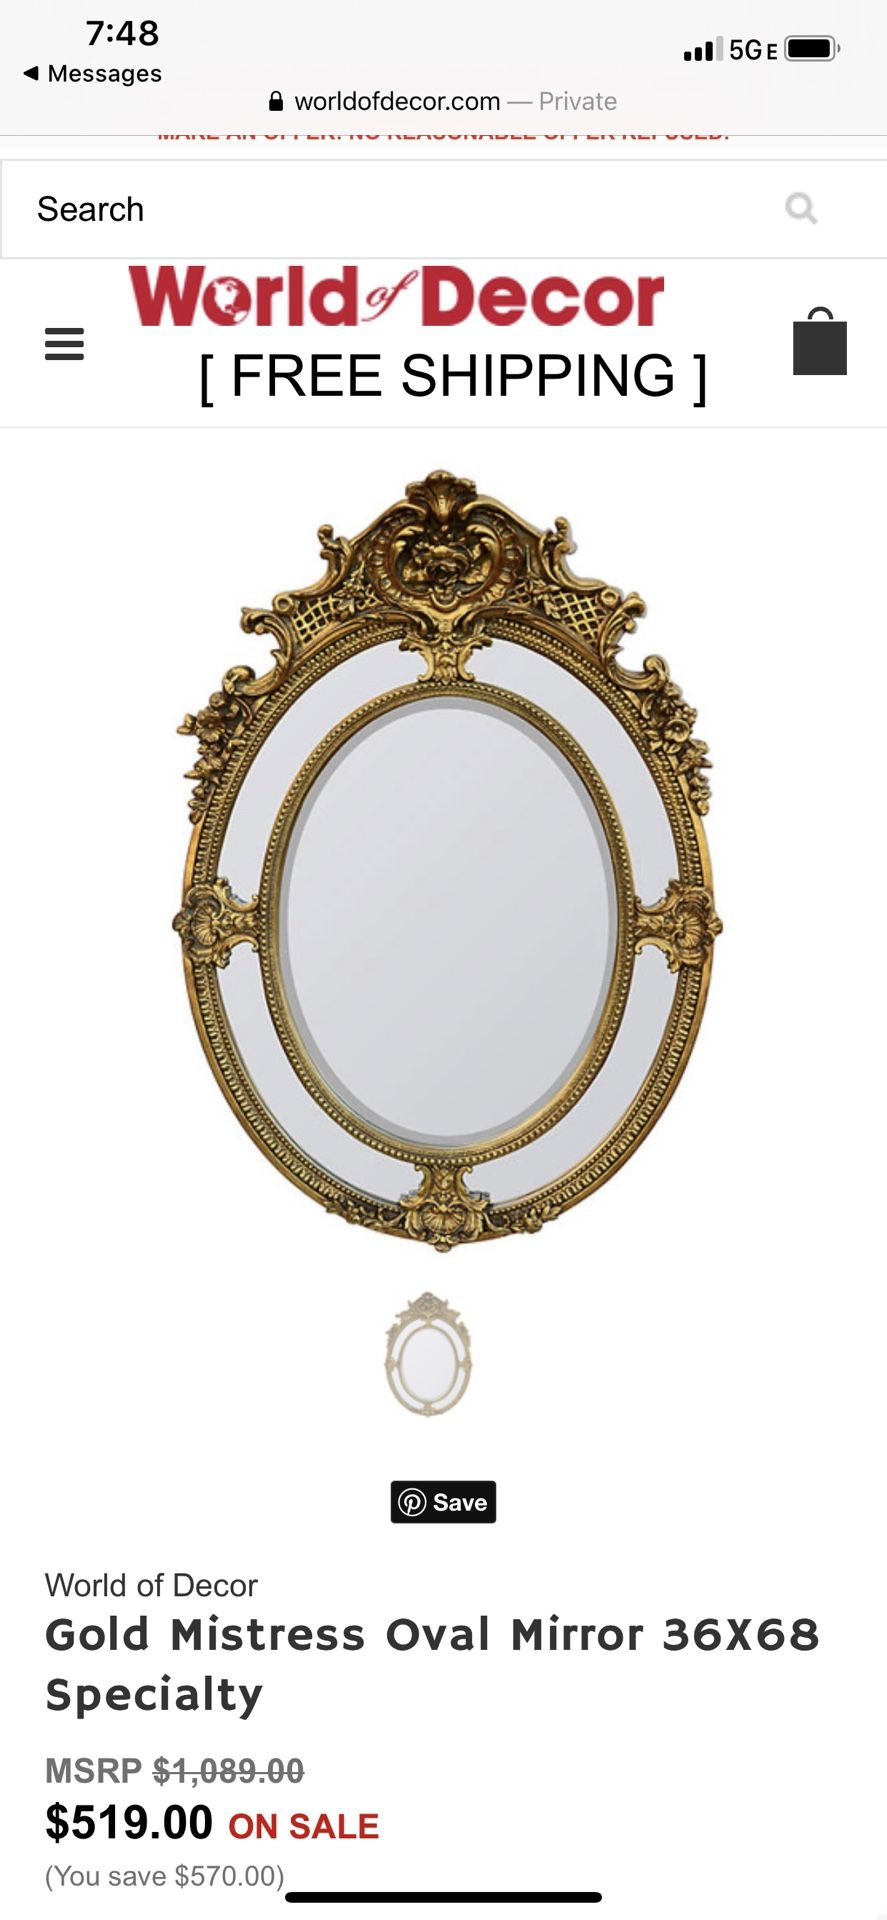 World Of Decor Gold Mistress Oval Mirror 36X68 Specialty Used To Stage Model Home Ornate Beveled Excellent Mint Condition Used To Stage A Model H